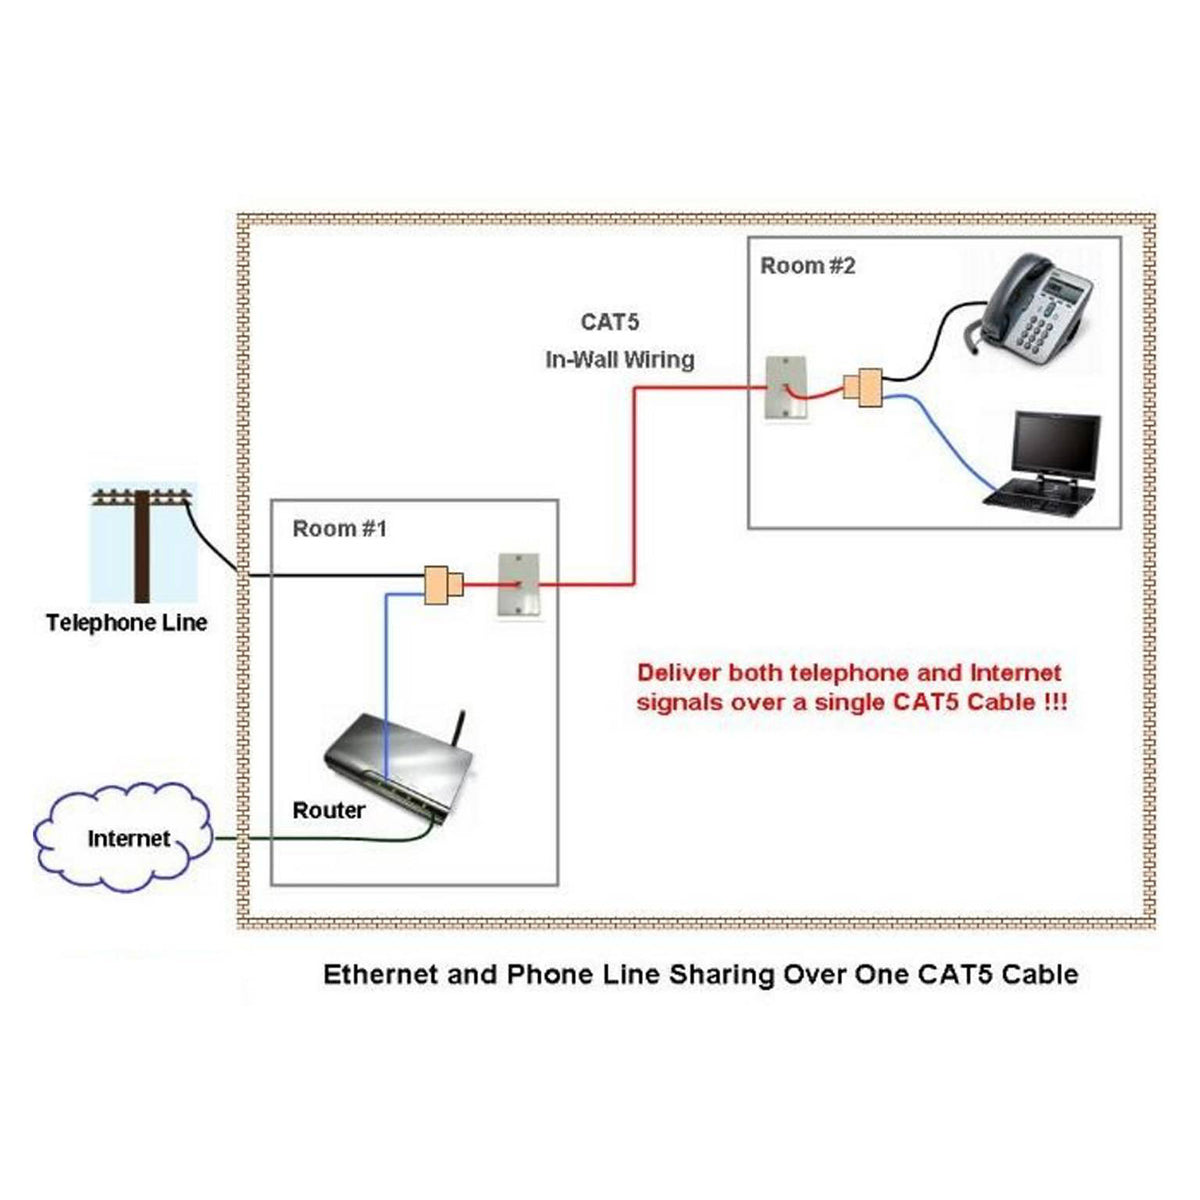 Rj45  Rj11 Splitter Cable Sharing Kit For Ethernet And